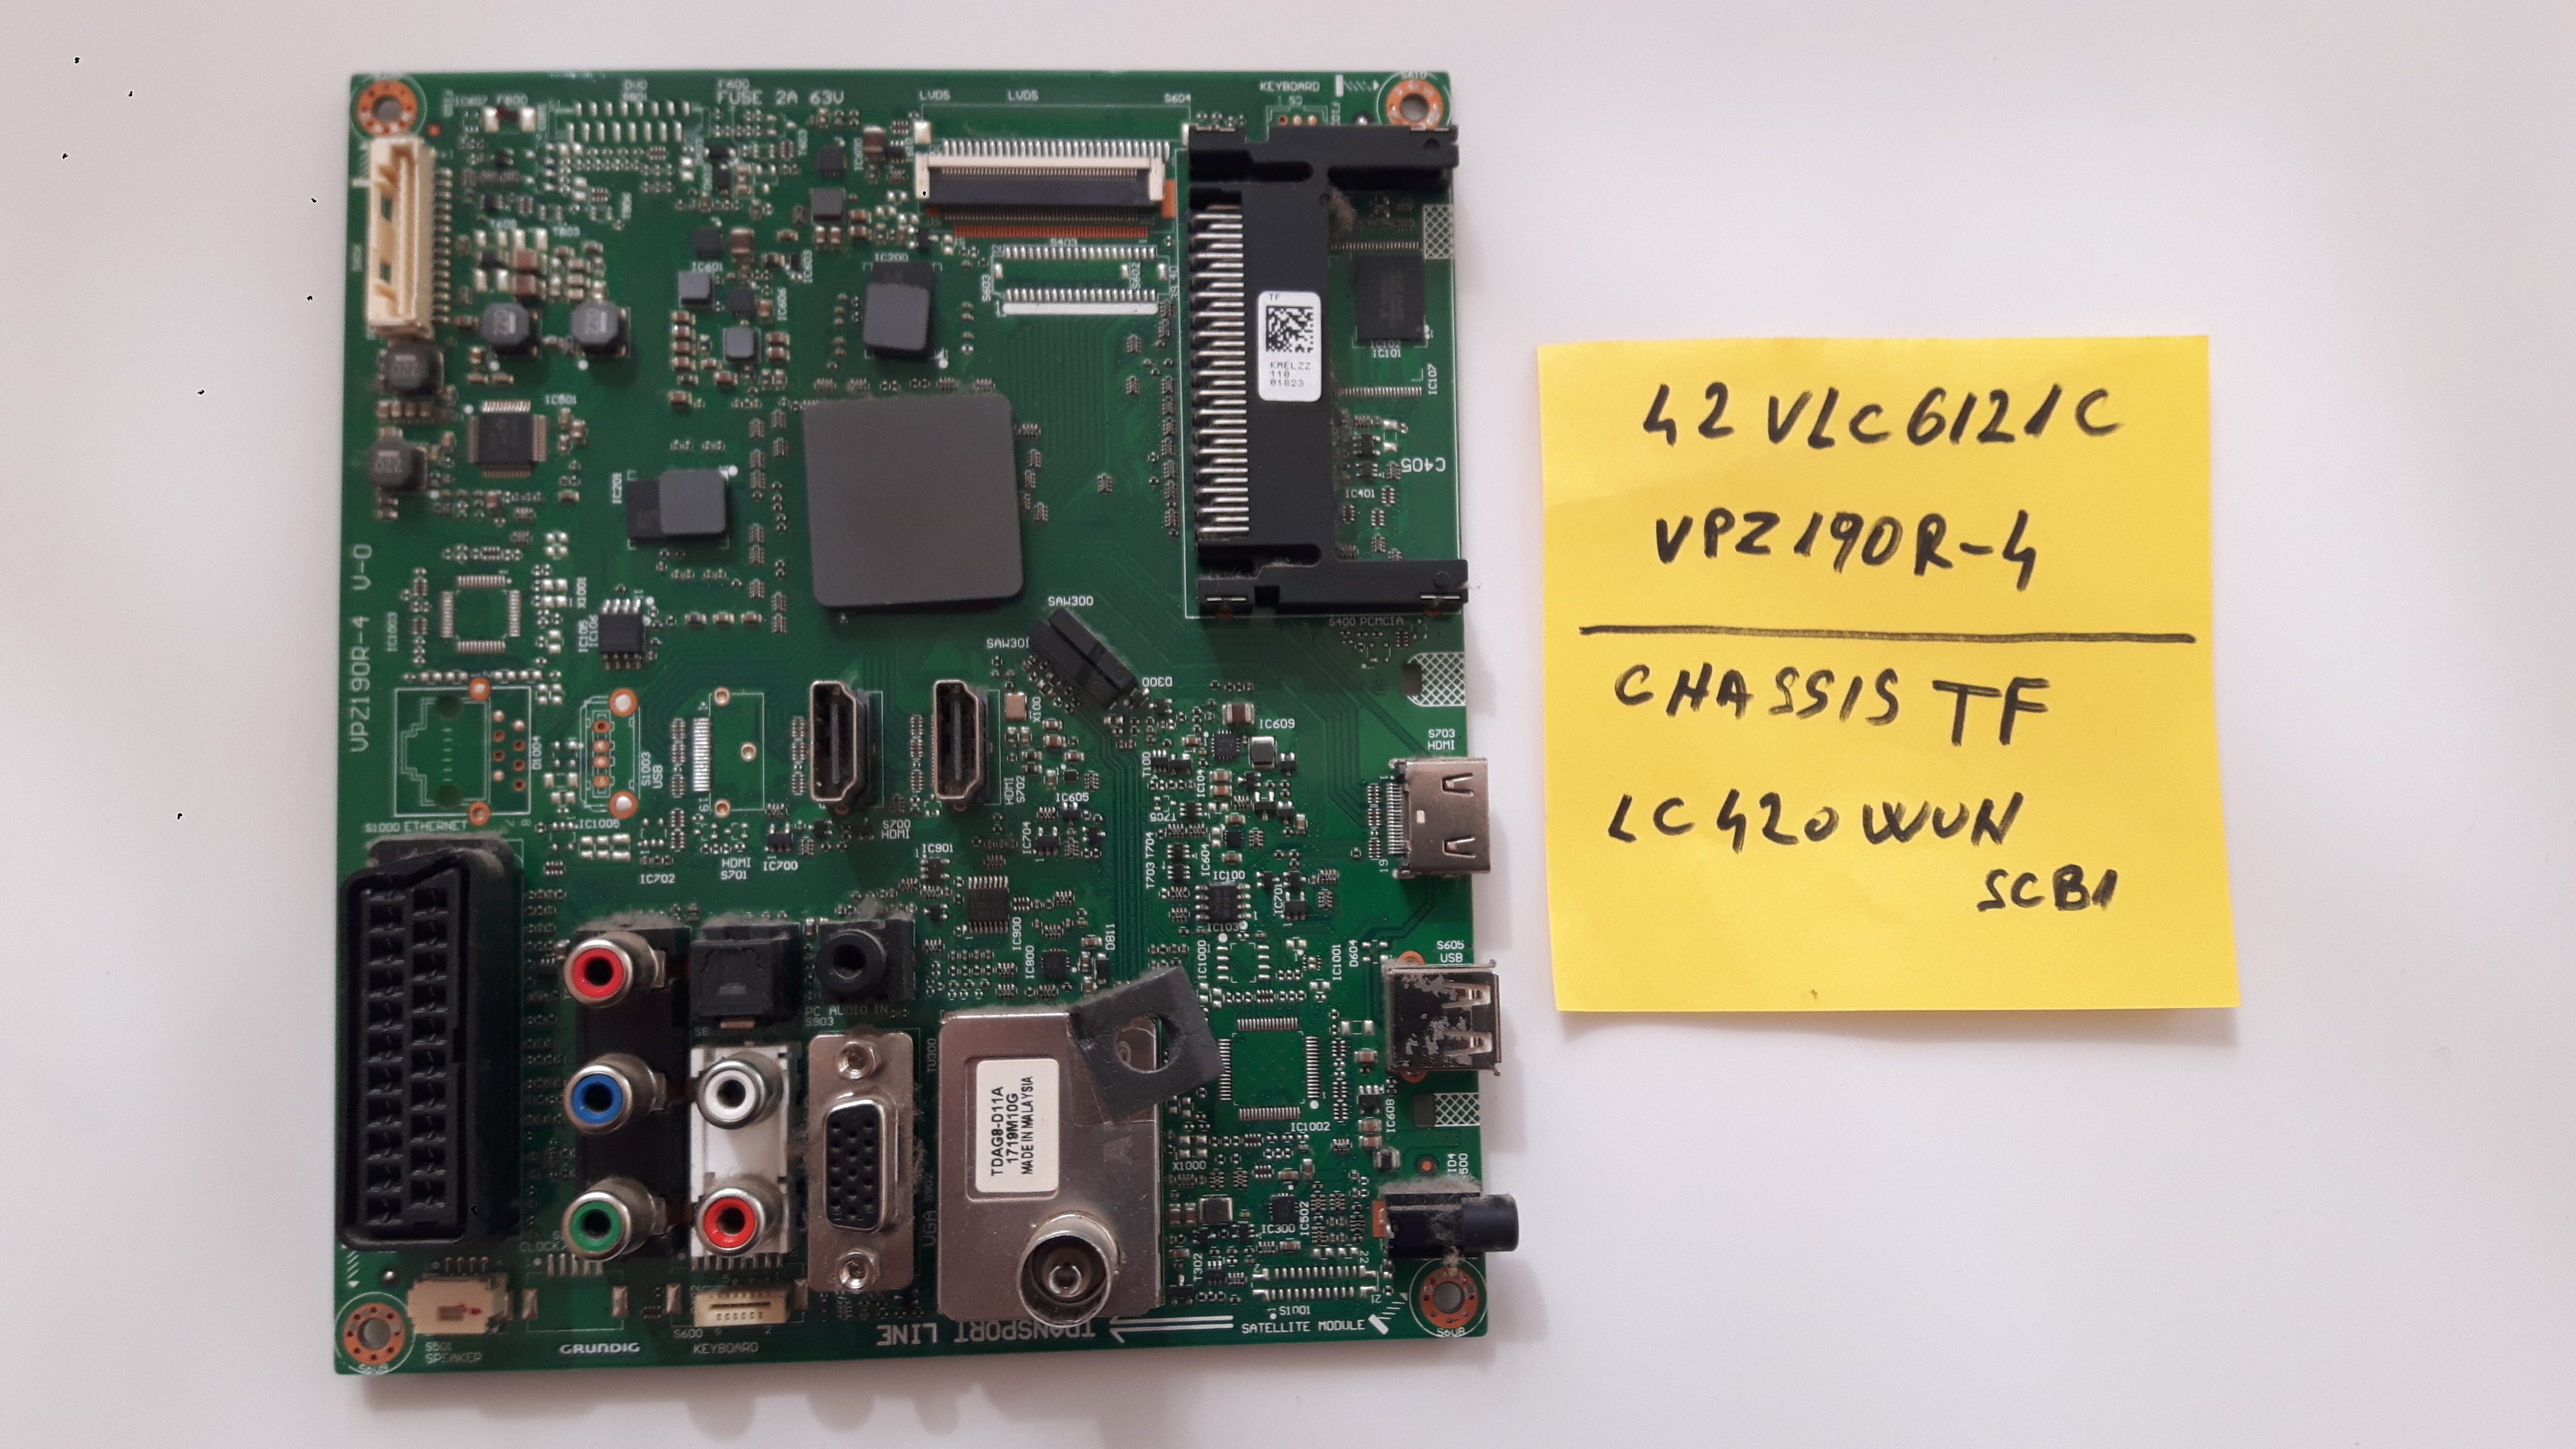 VPZ190R-4 42VCL6121C Chassis TF